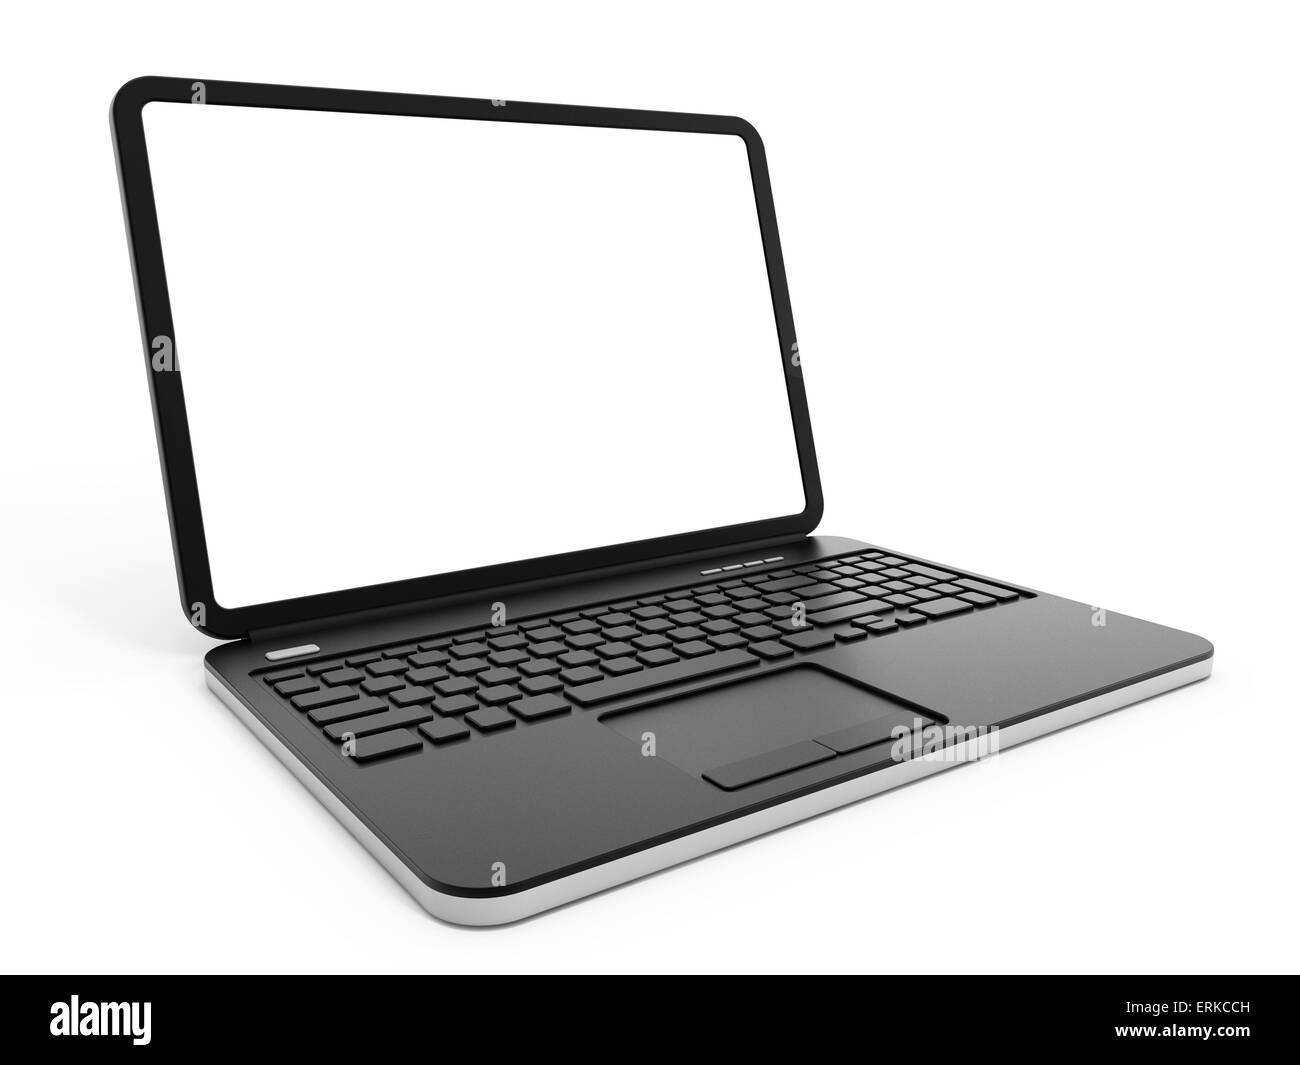 Laptop computer with blank screen isolated on white background. - Stock Image